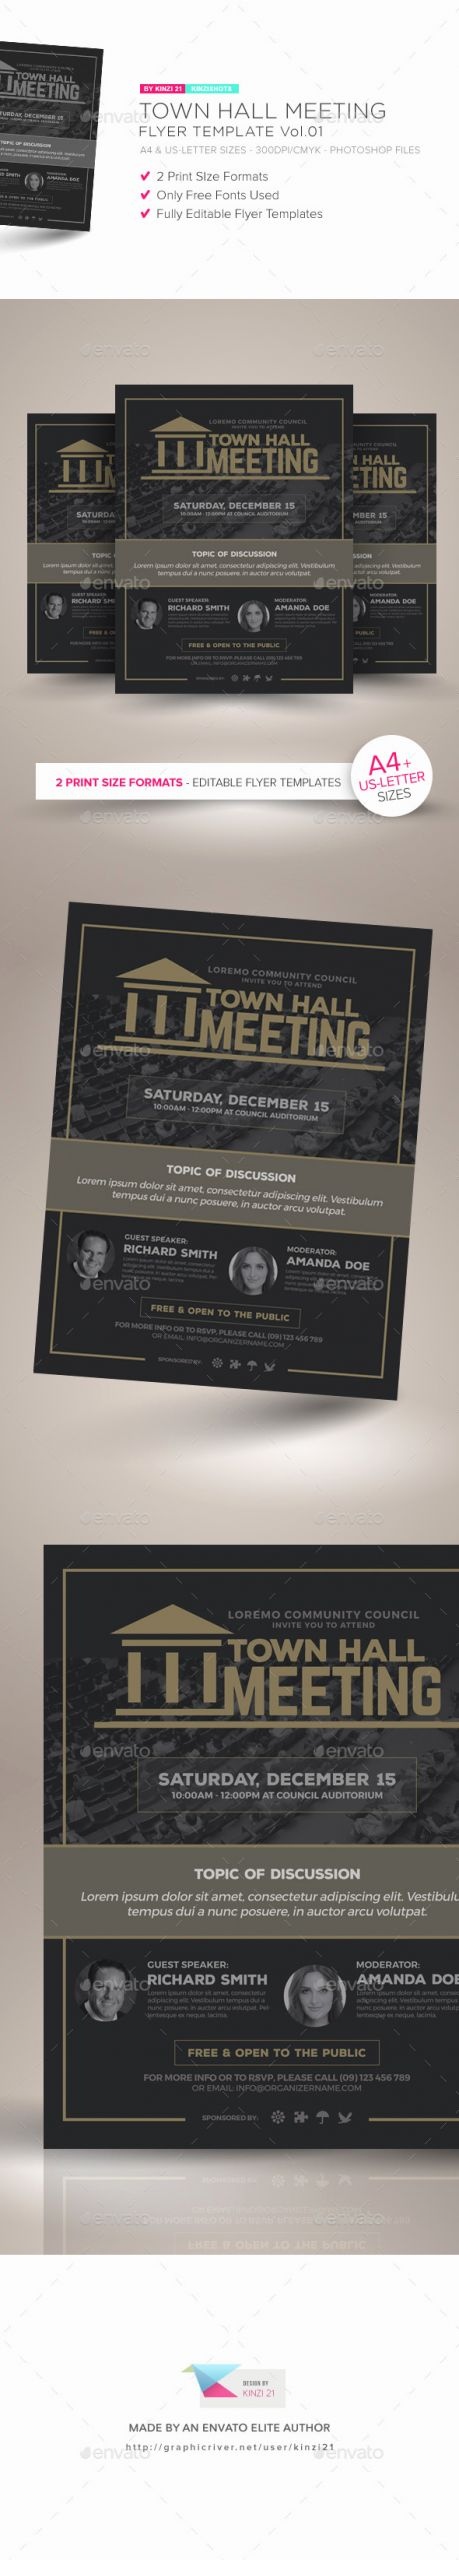 Town Hall Meeting Template New town Hall Meeting Flyer Vol 01 by Kinzishots